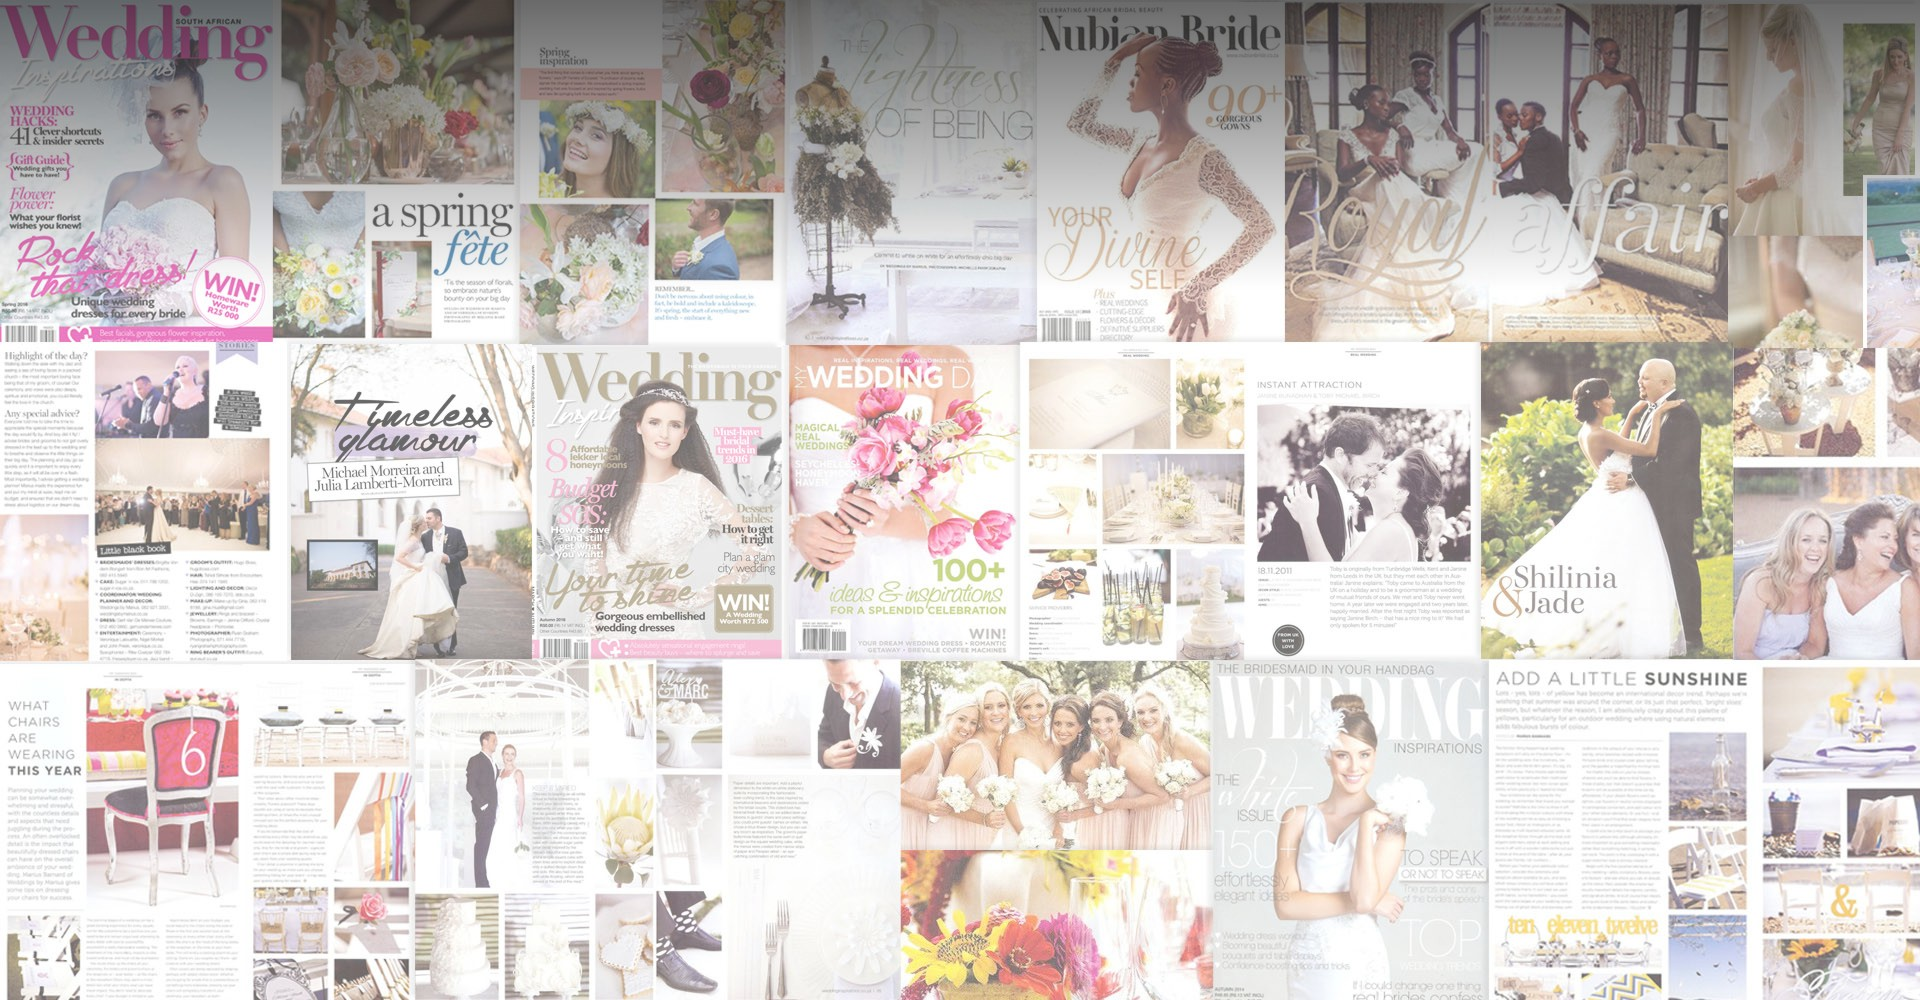 Weddings by Marius in the Media; South African wedding publications